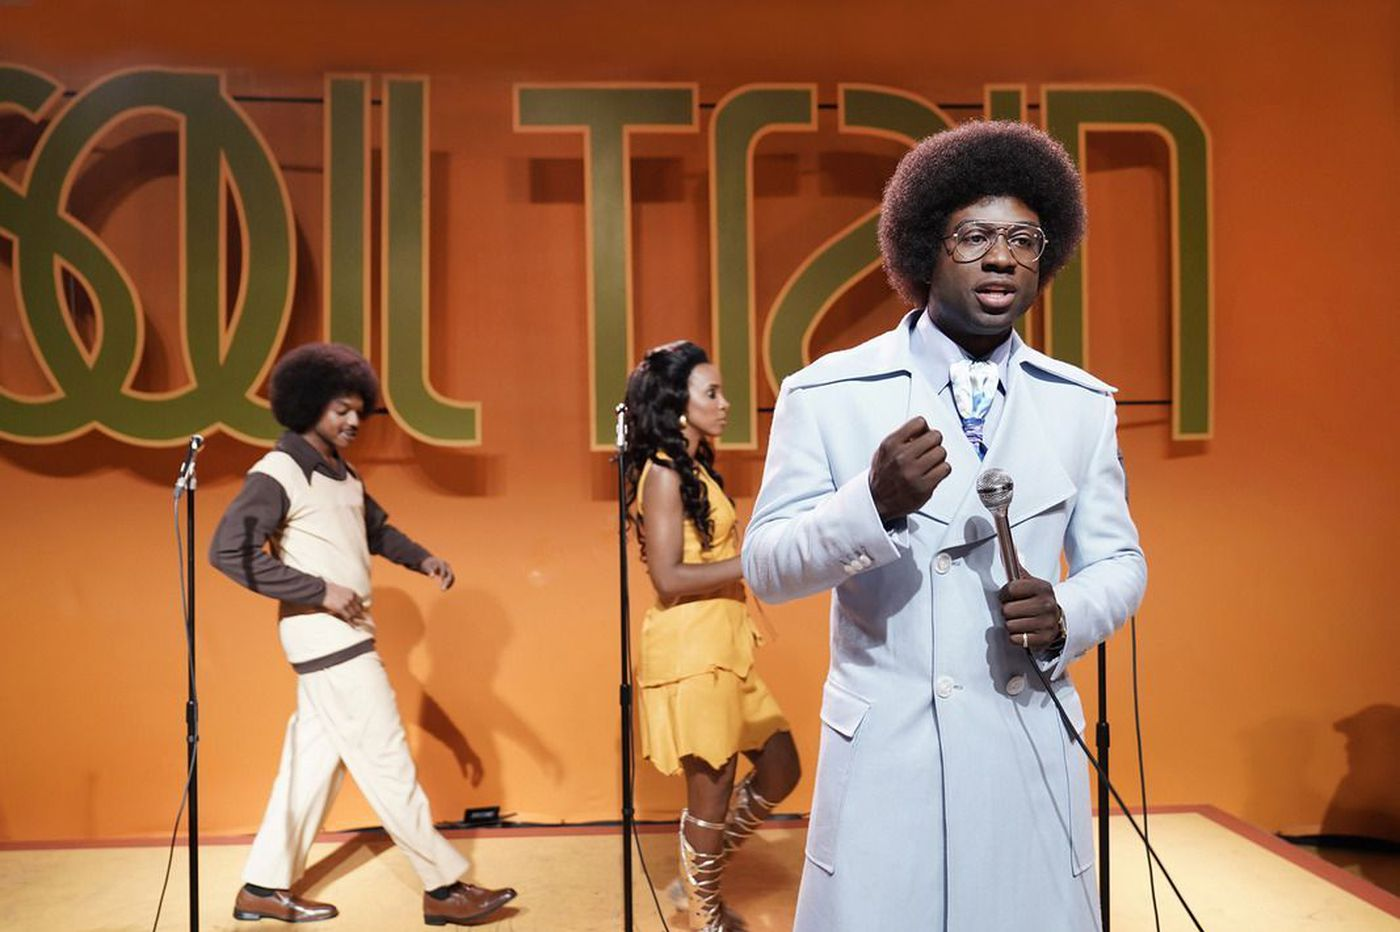 TV picks: 'American Soul,' 'One Day at a Time,' 'Won't You Be My Neighbor?' and more